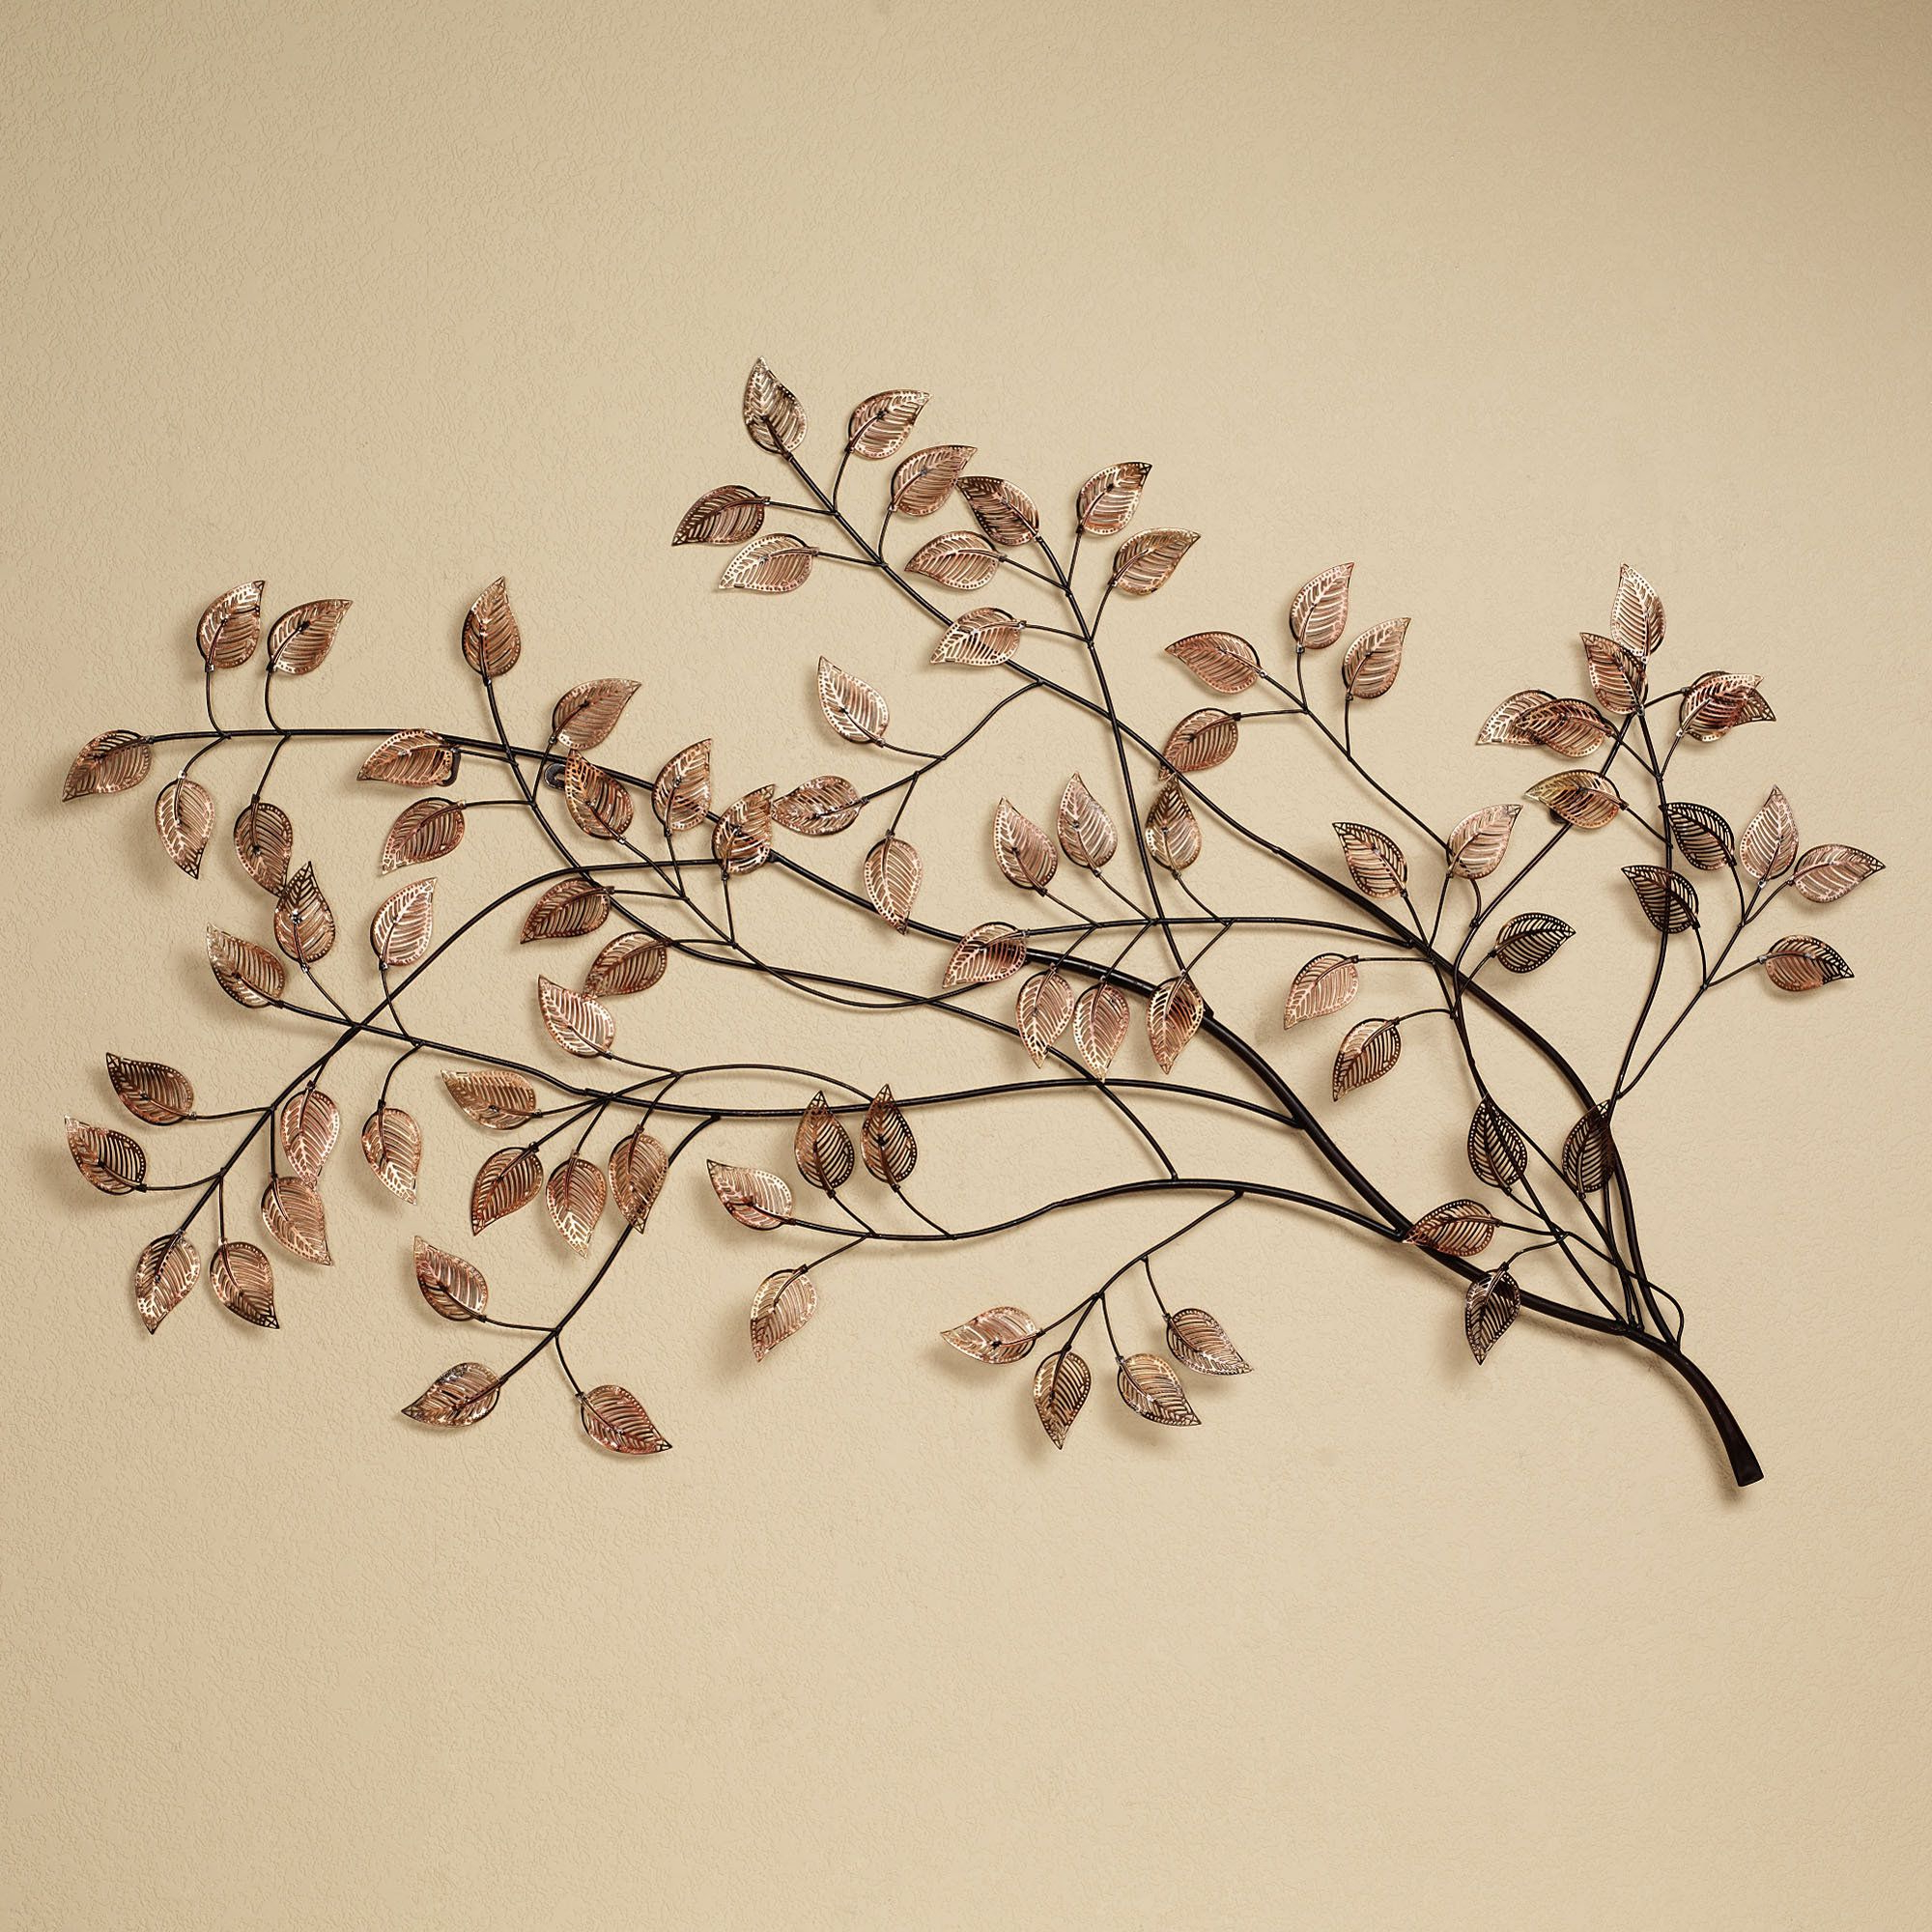 Walls & Accents Pertaining To Leaves Metal Sculpture Wall Decor (Gallery 1 of 20)